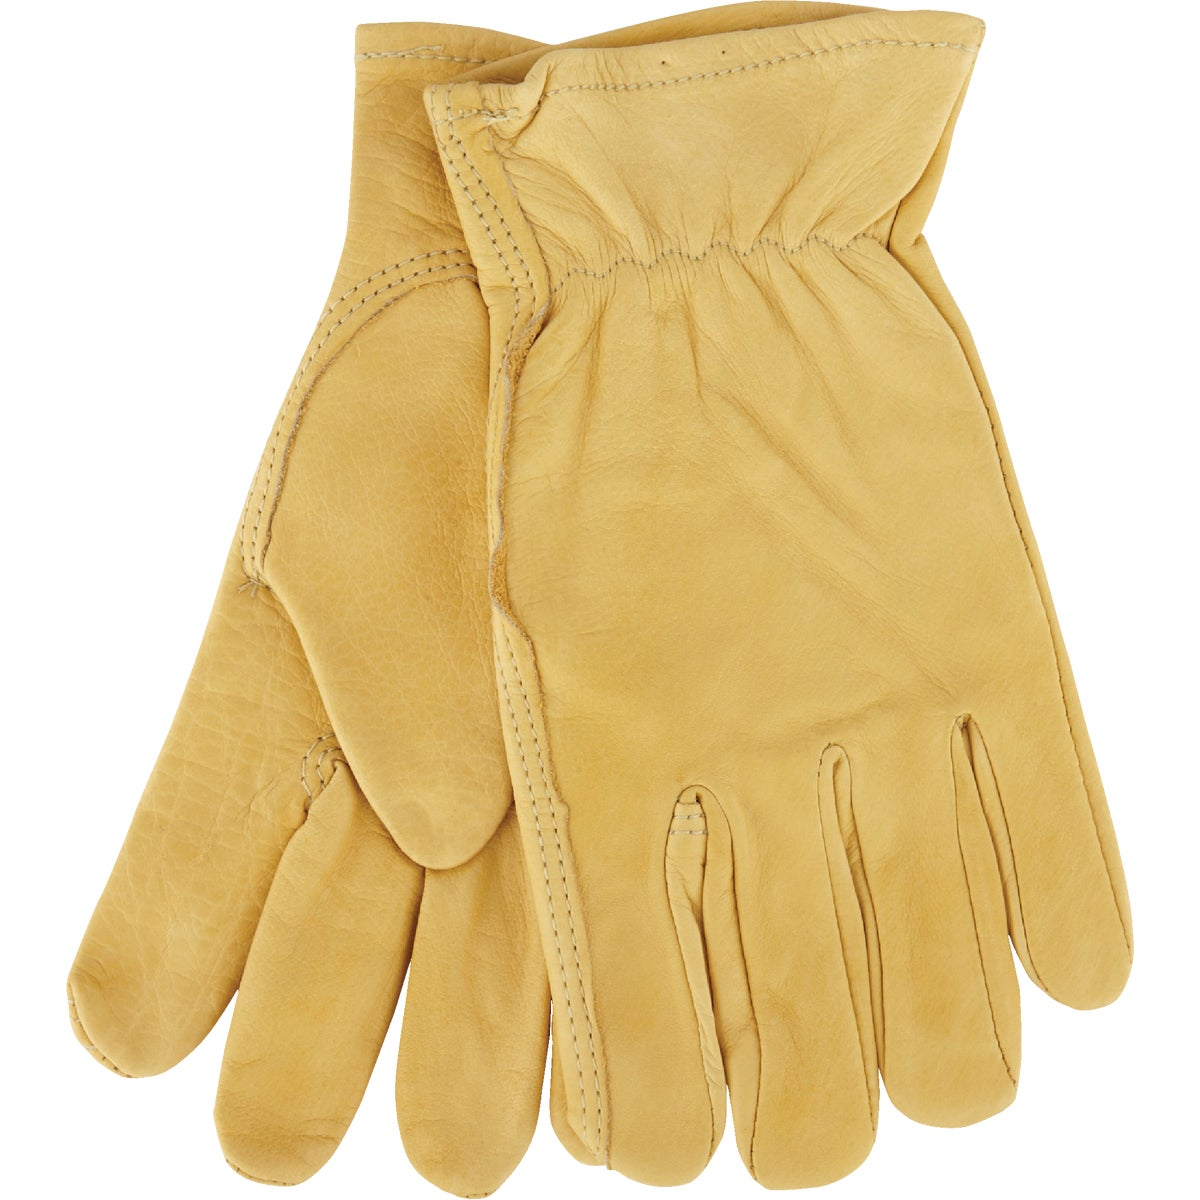 MED COWHIDE GRAIN GLOVE - 710270 by Do it Best